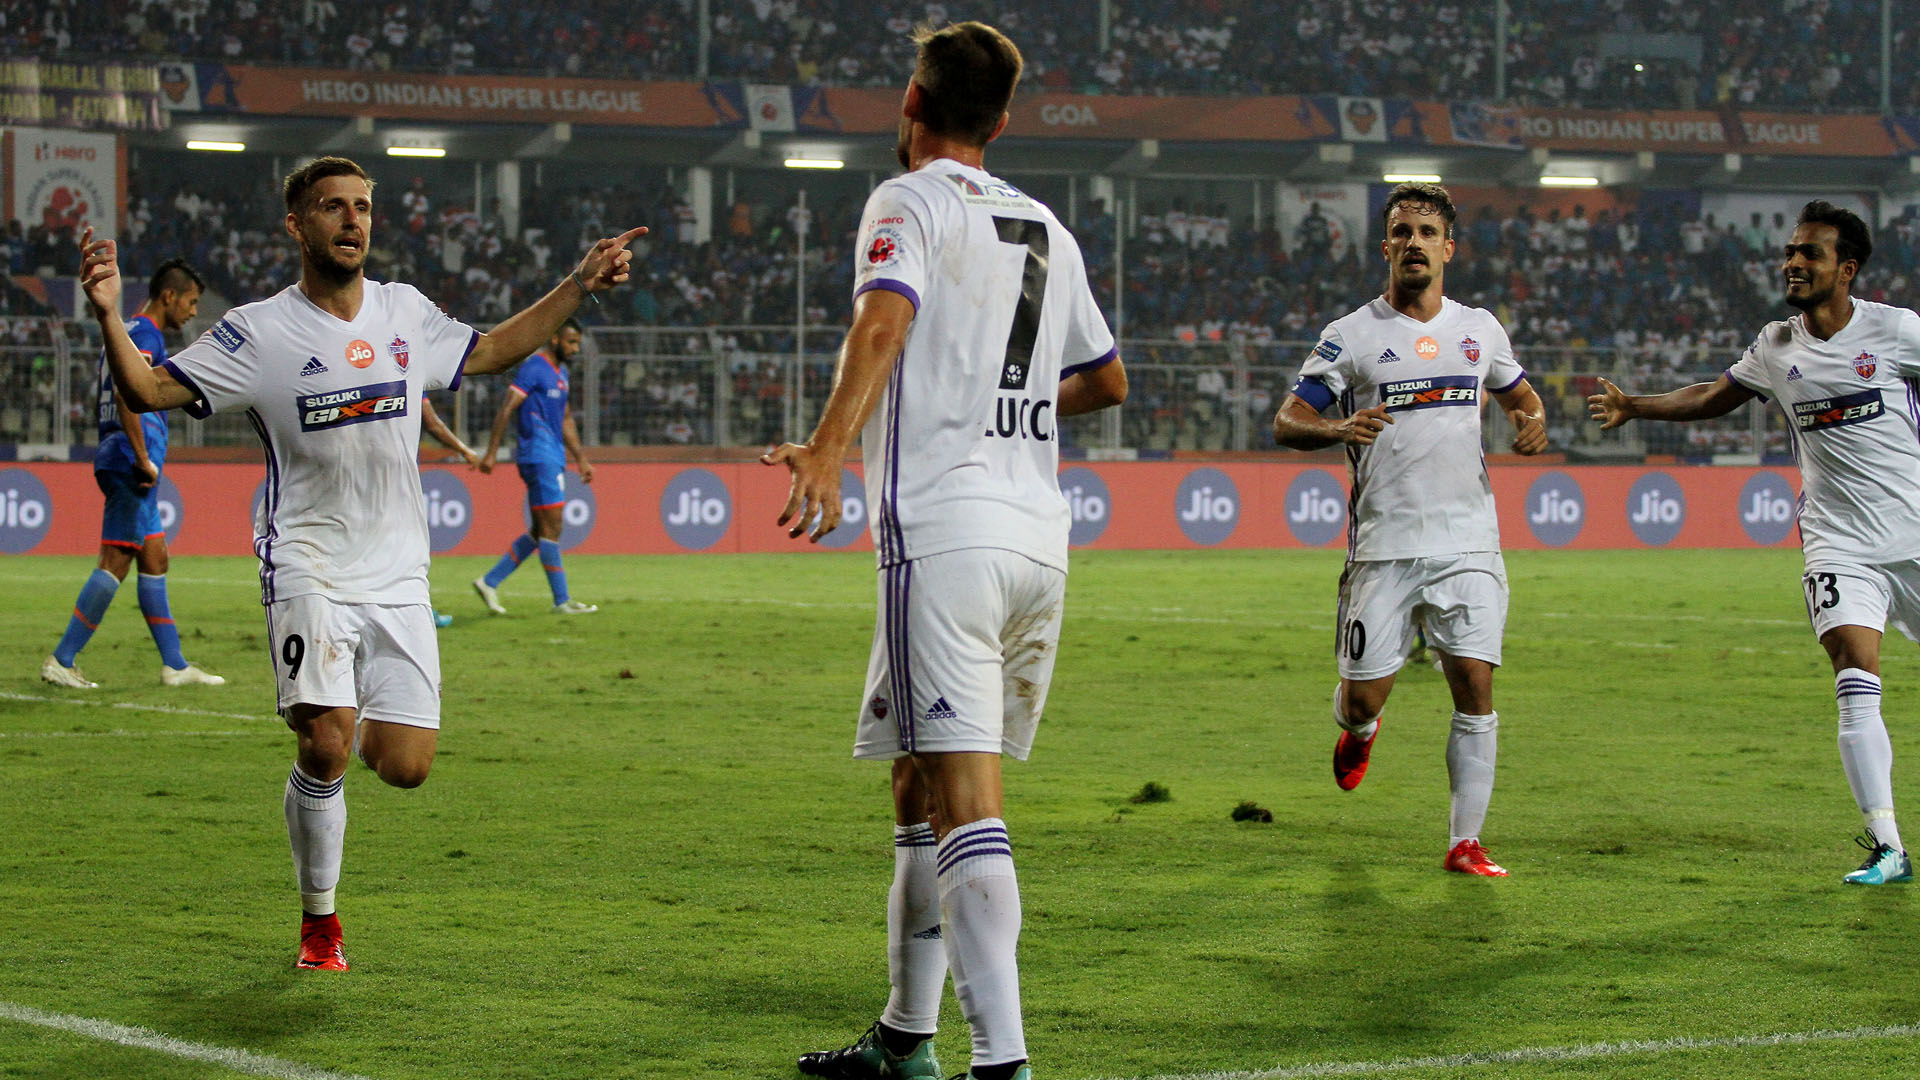 ISL: FC Pune City coach Popovic suspended, fined